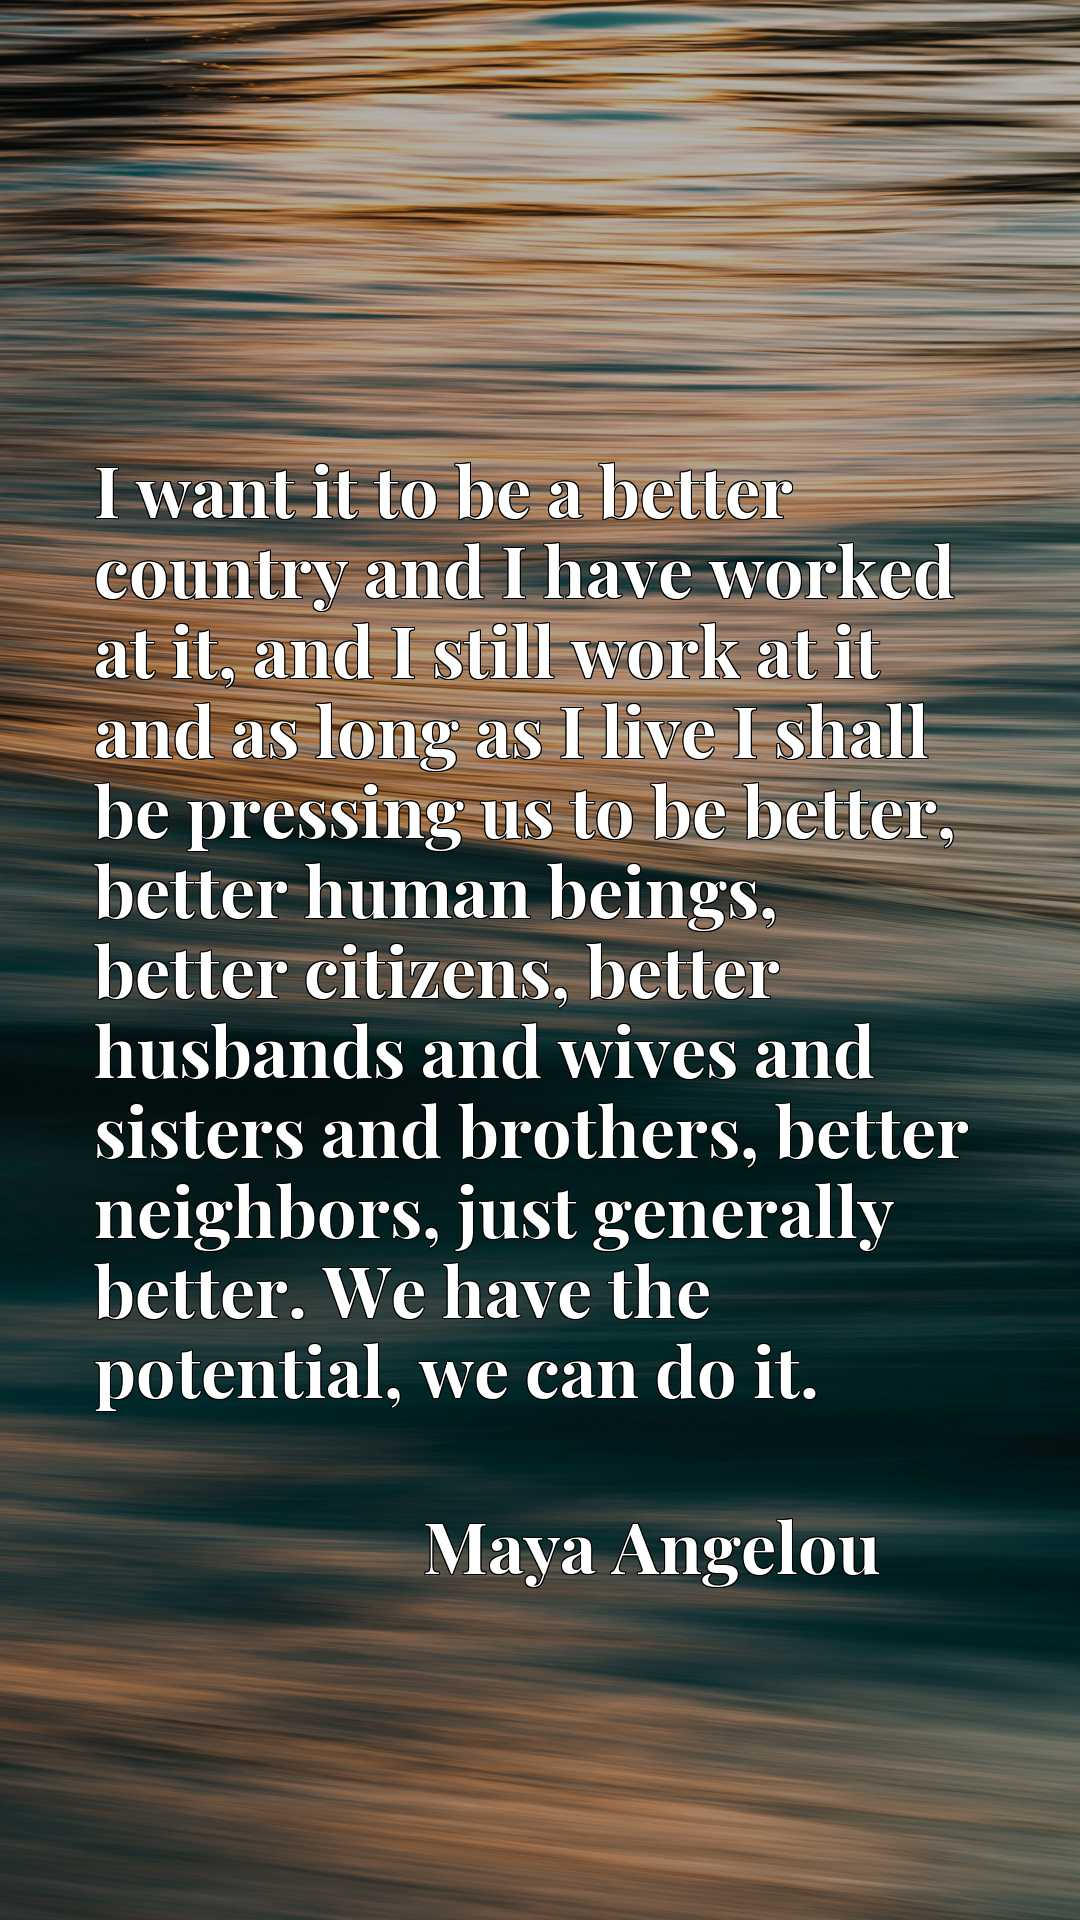 I want it to be a better country and I have worked at it, and I still work at it and as long as I live I shall be pressing us to be better, better human beings, better citizens, better husbands and wives and sisters and brothers, better neighbors, just generally better. We have the potential, we can do it.